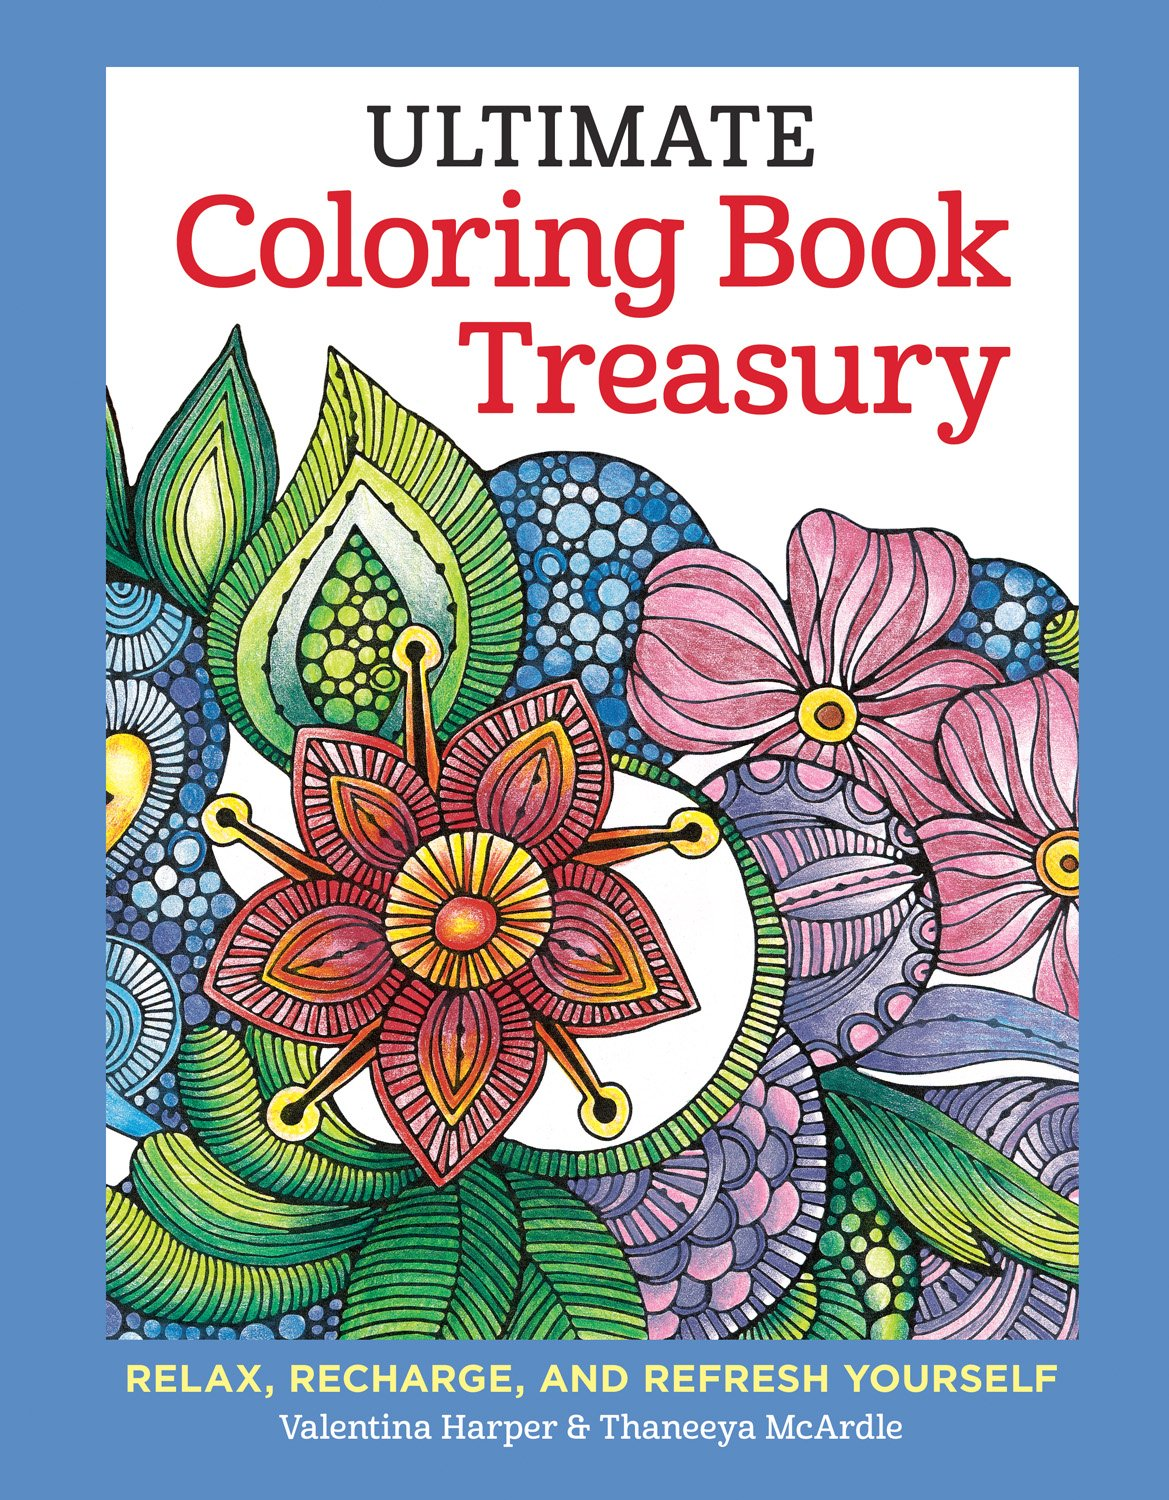 Download Ultimate Coloring Book Treasury: Relax, Recharge, and Refresh Yourself (Coloring Collection) PDF